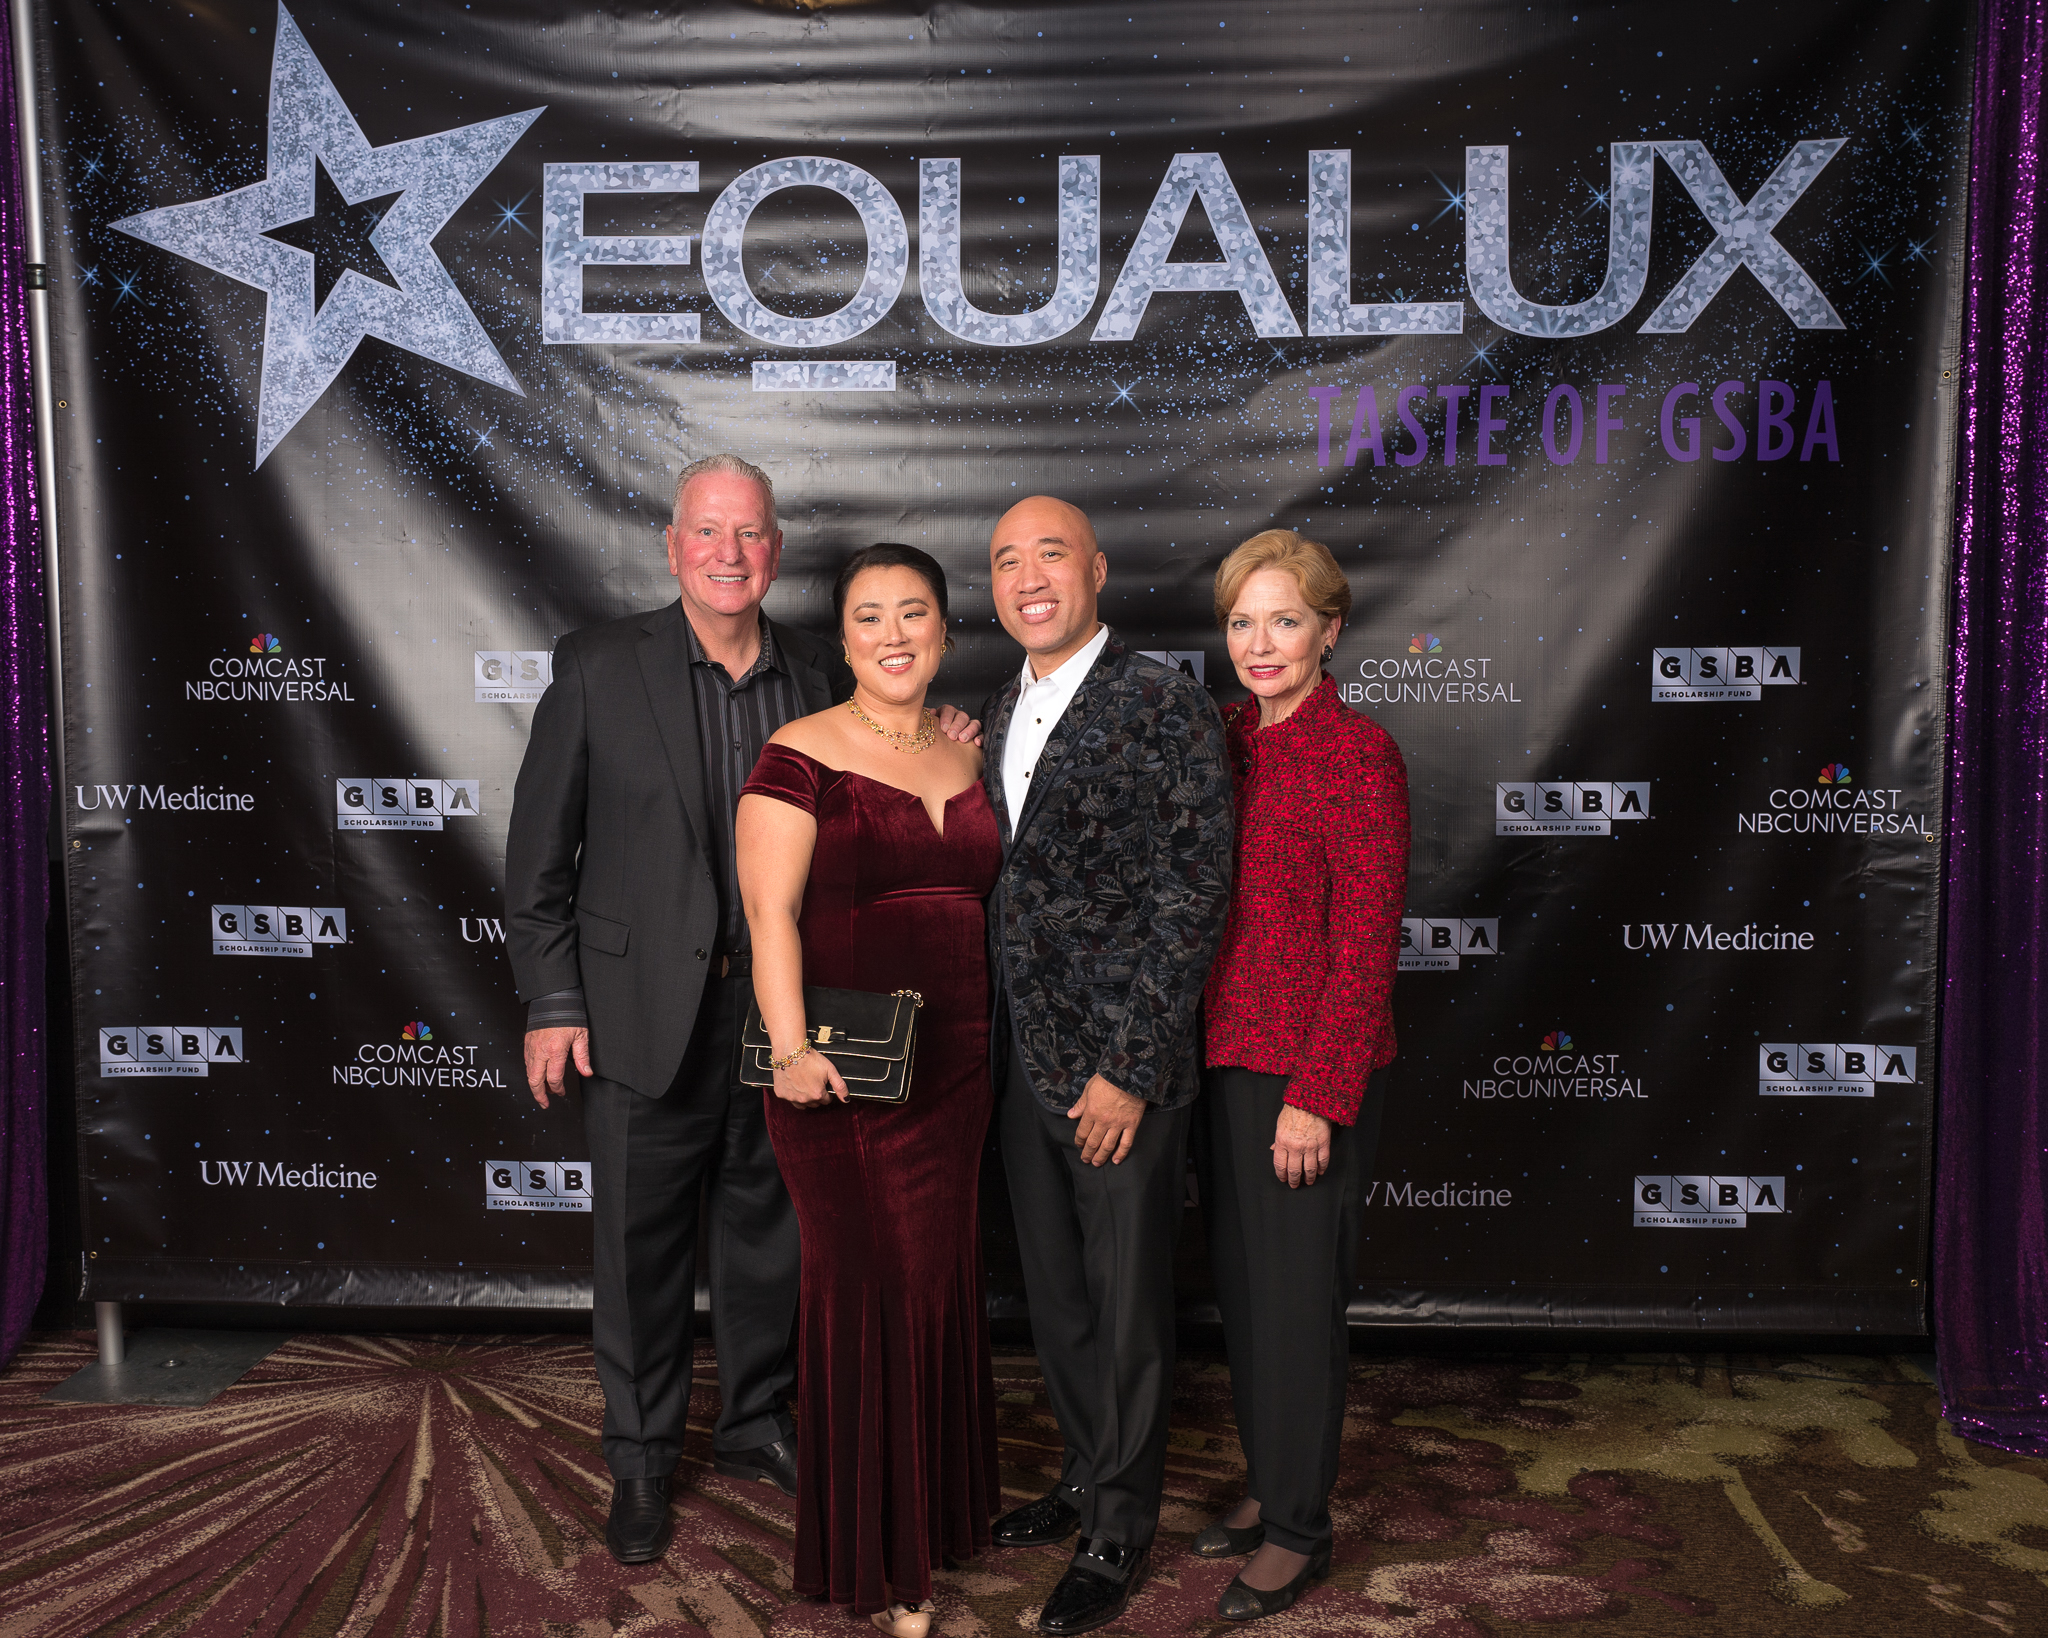 111718_GSBA EQUALUX at The Westin Seattle (Credit- Nate Gowdy)-124.jpg